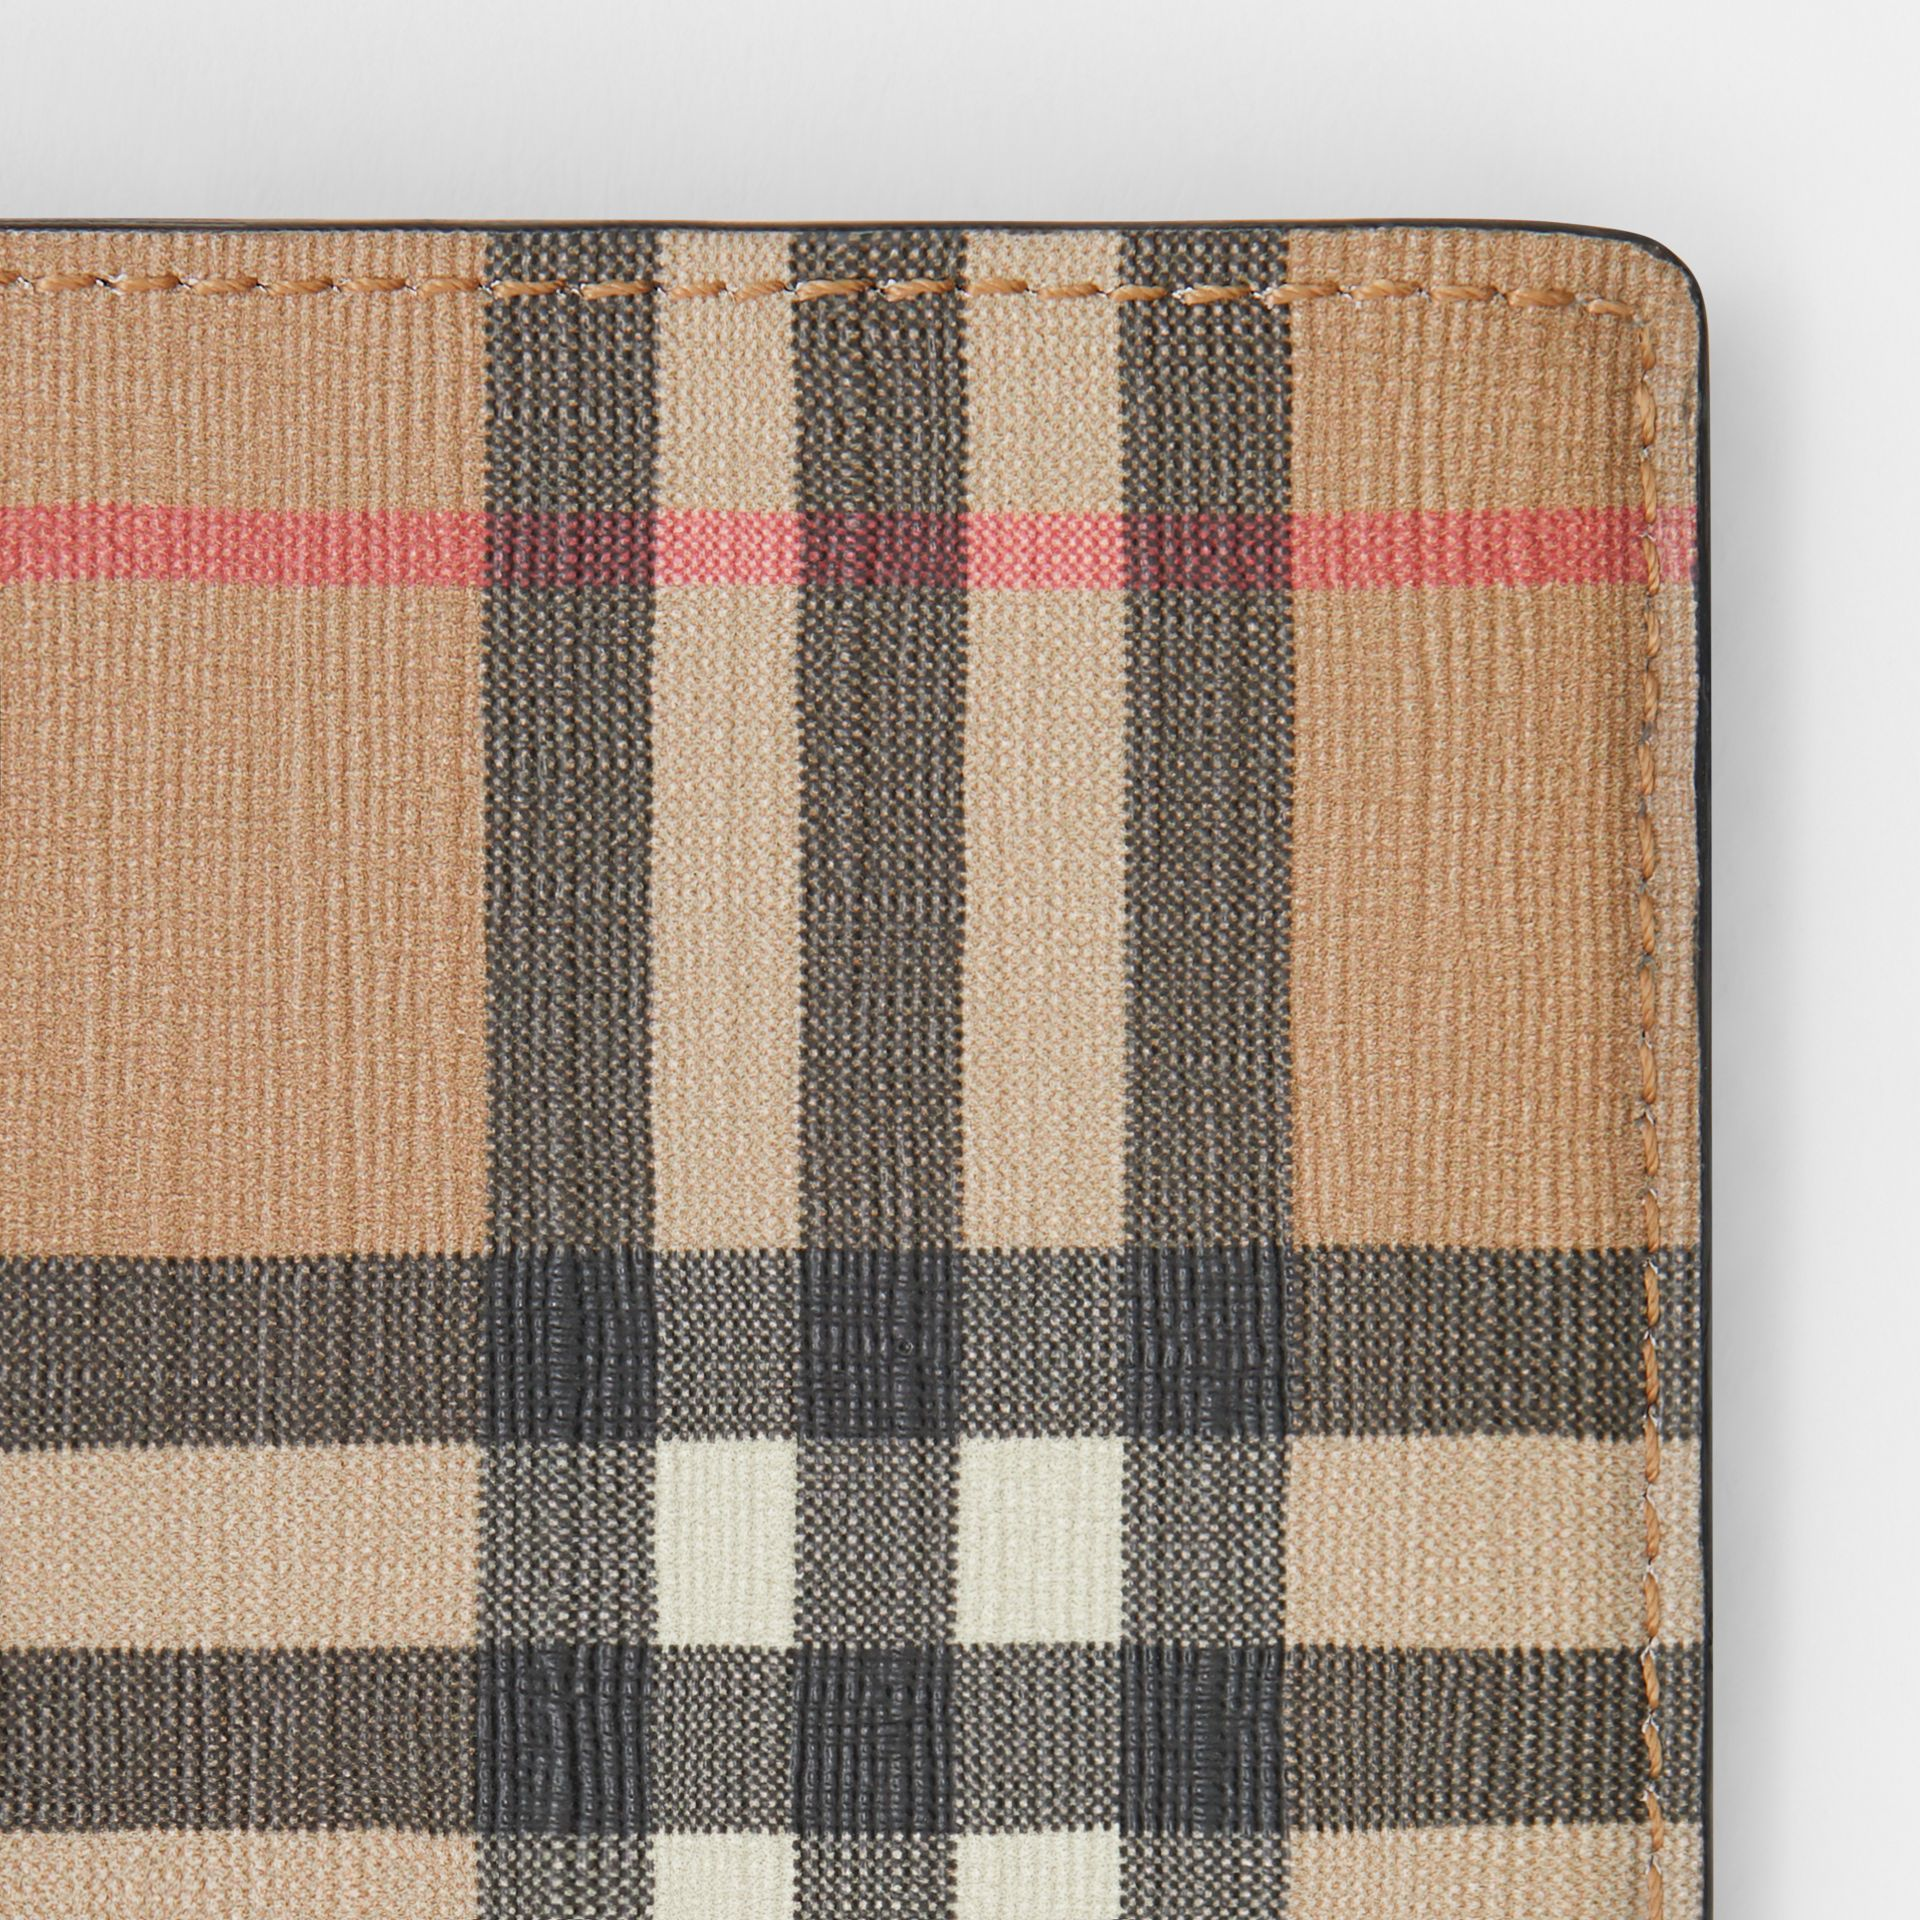 Vintage Check E-canvas International Bifold Wallet in Archive Beige - Men | Burberry - gallery image 1